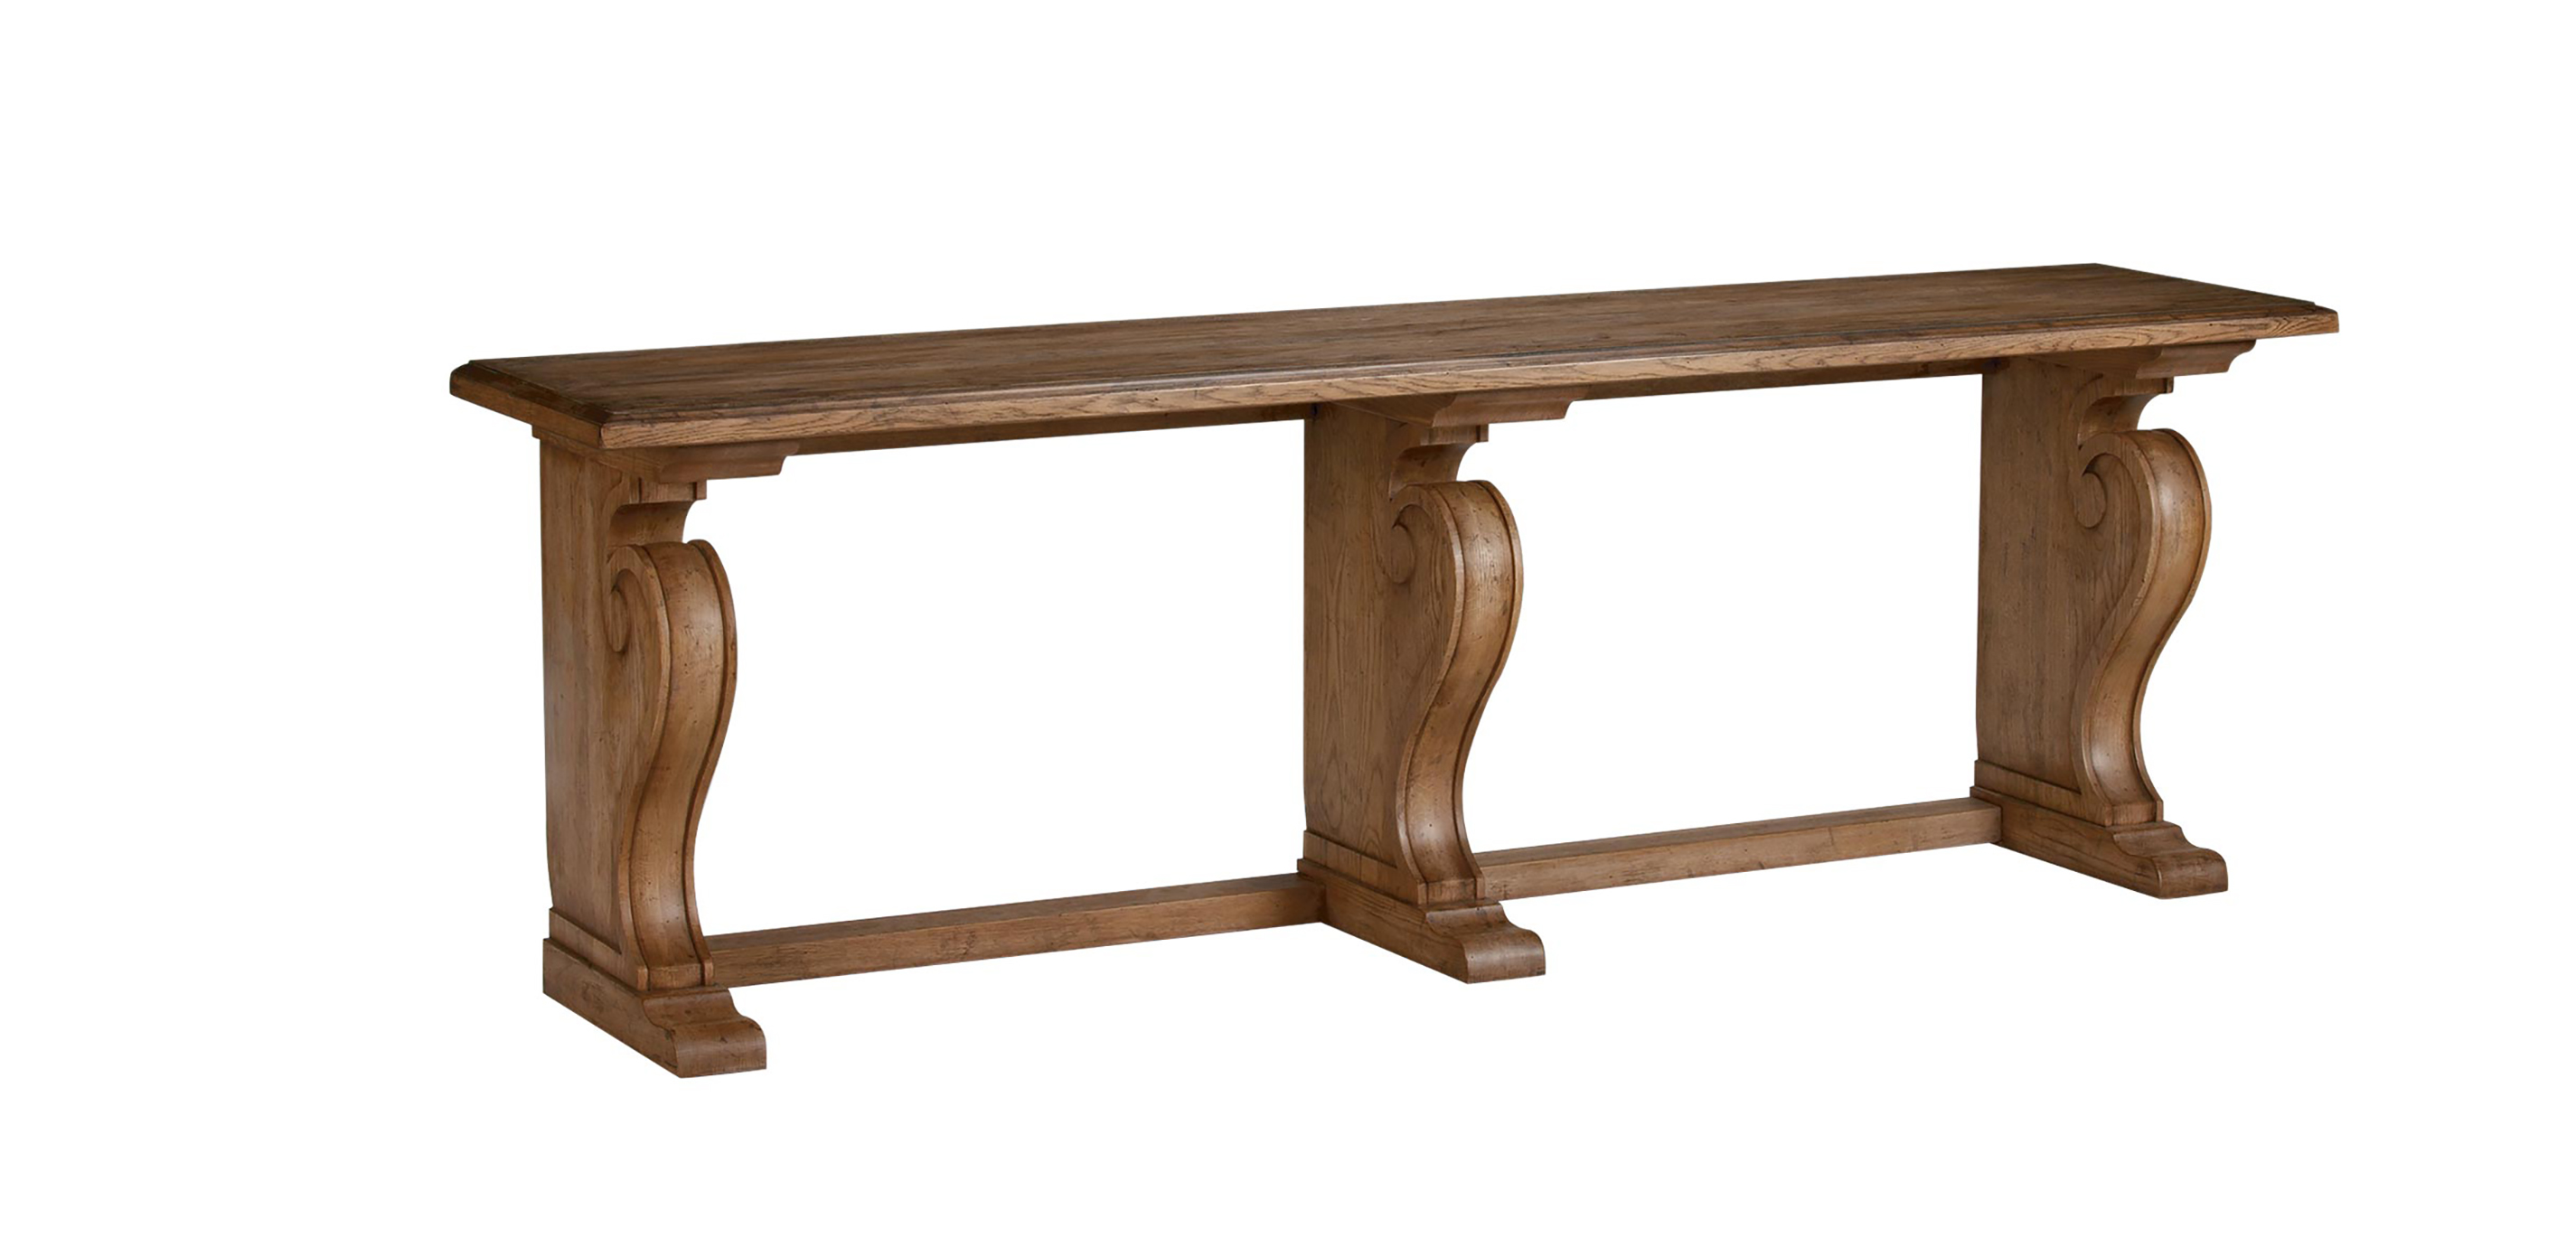 furniture center le tables walnut baroque italian an square tab antiques table tablea trianon main library category